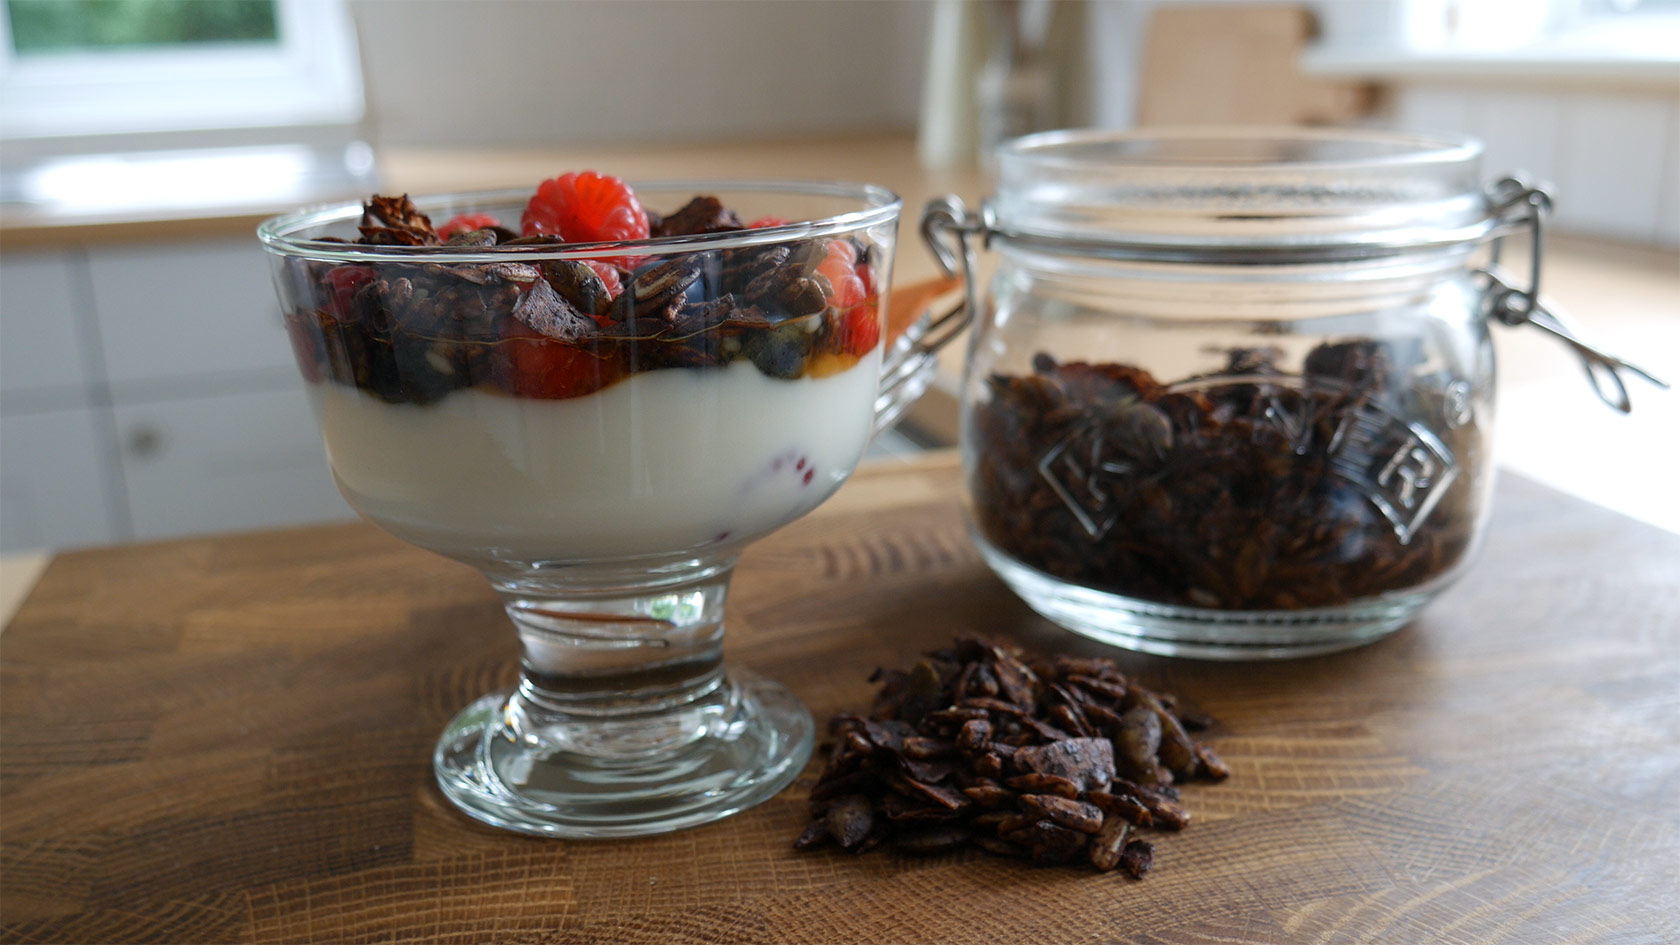 A bowl of yogurt topped with berries and chocolate crunch topping.